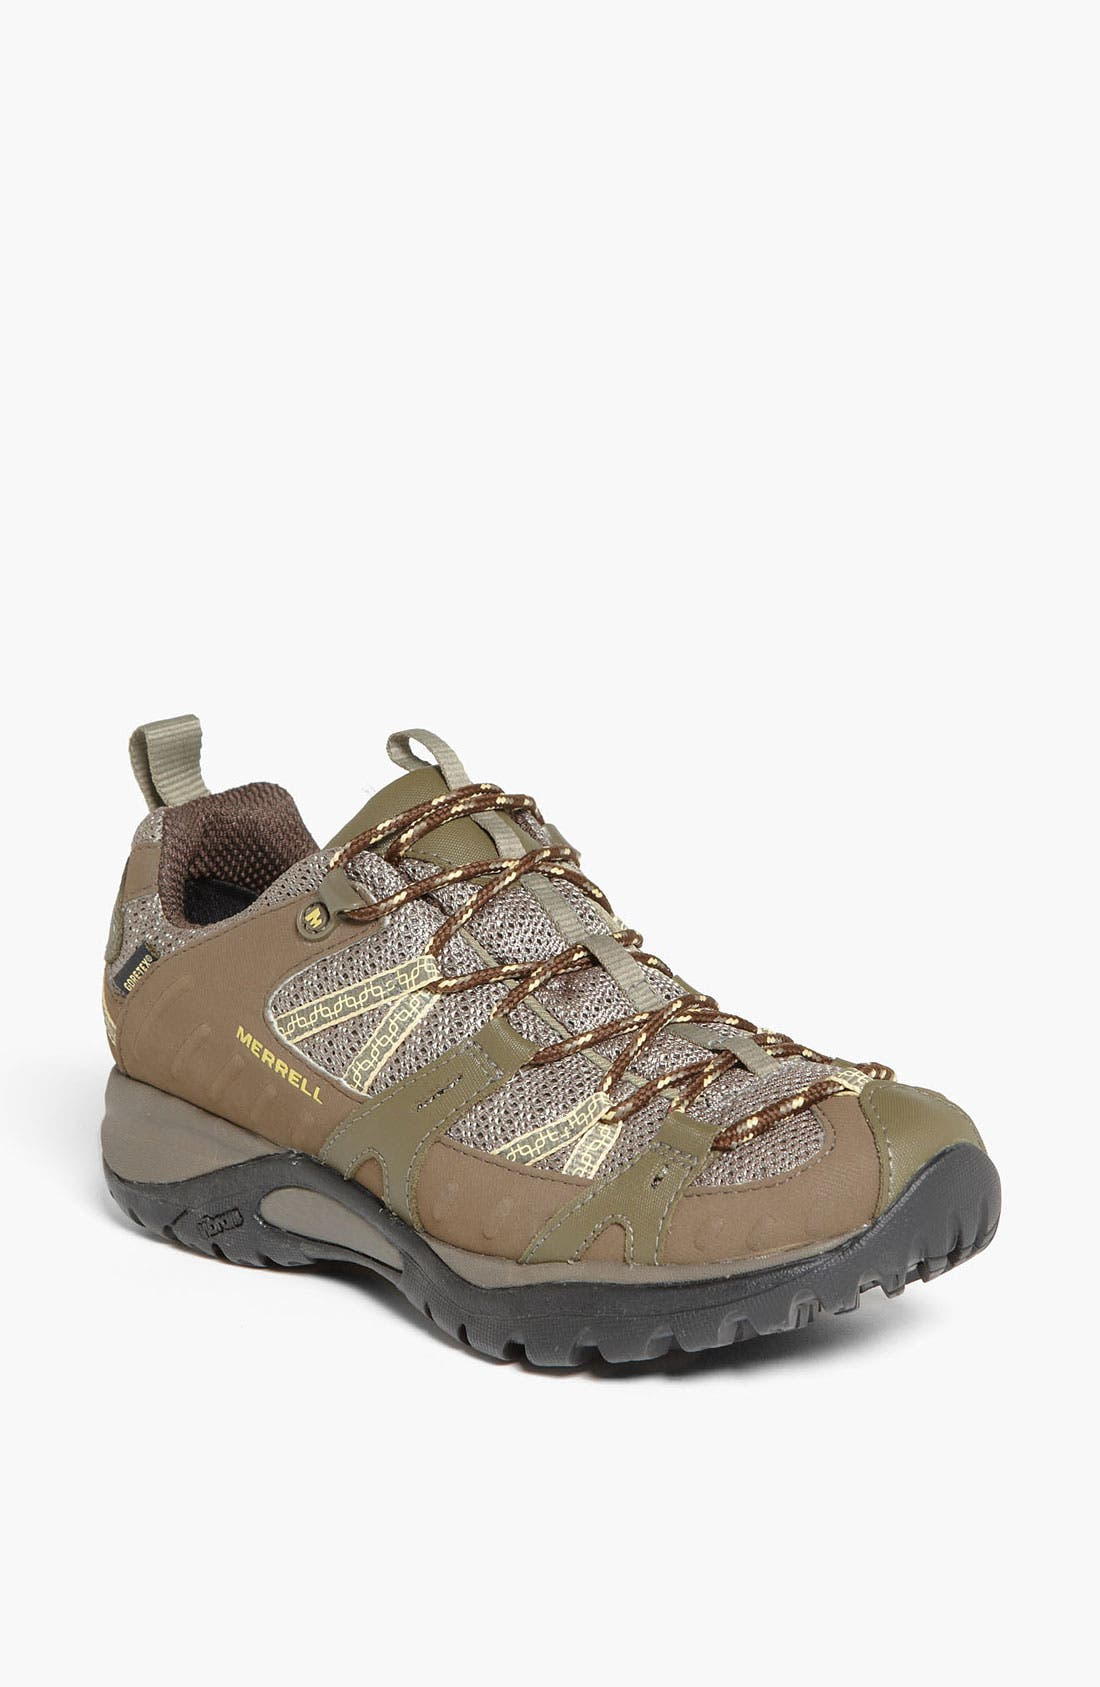 Alternate Image 1 Selected - Merrell 'Siren Sport 2' Waterproof Walking Shoe (Women)